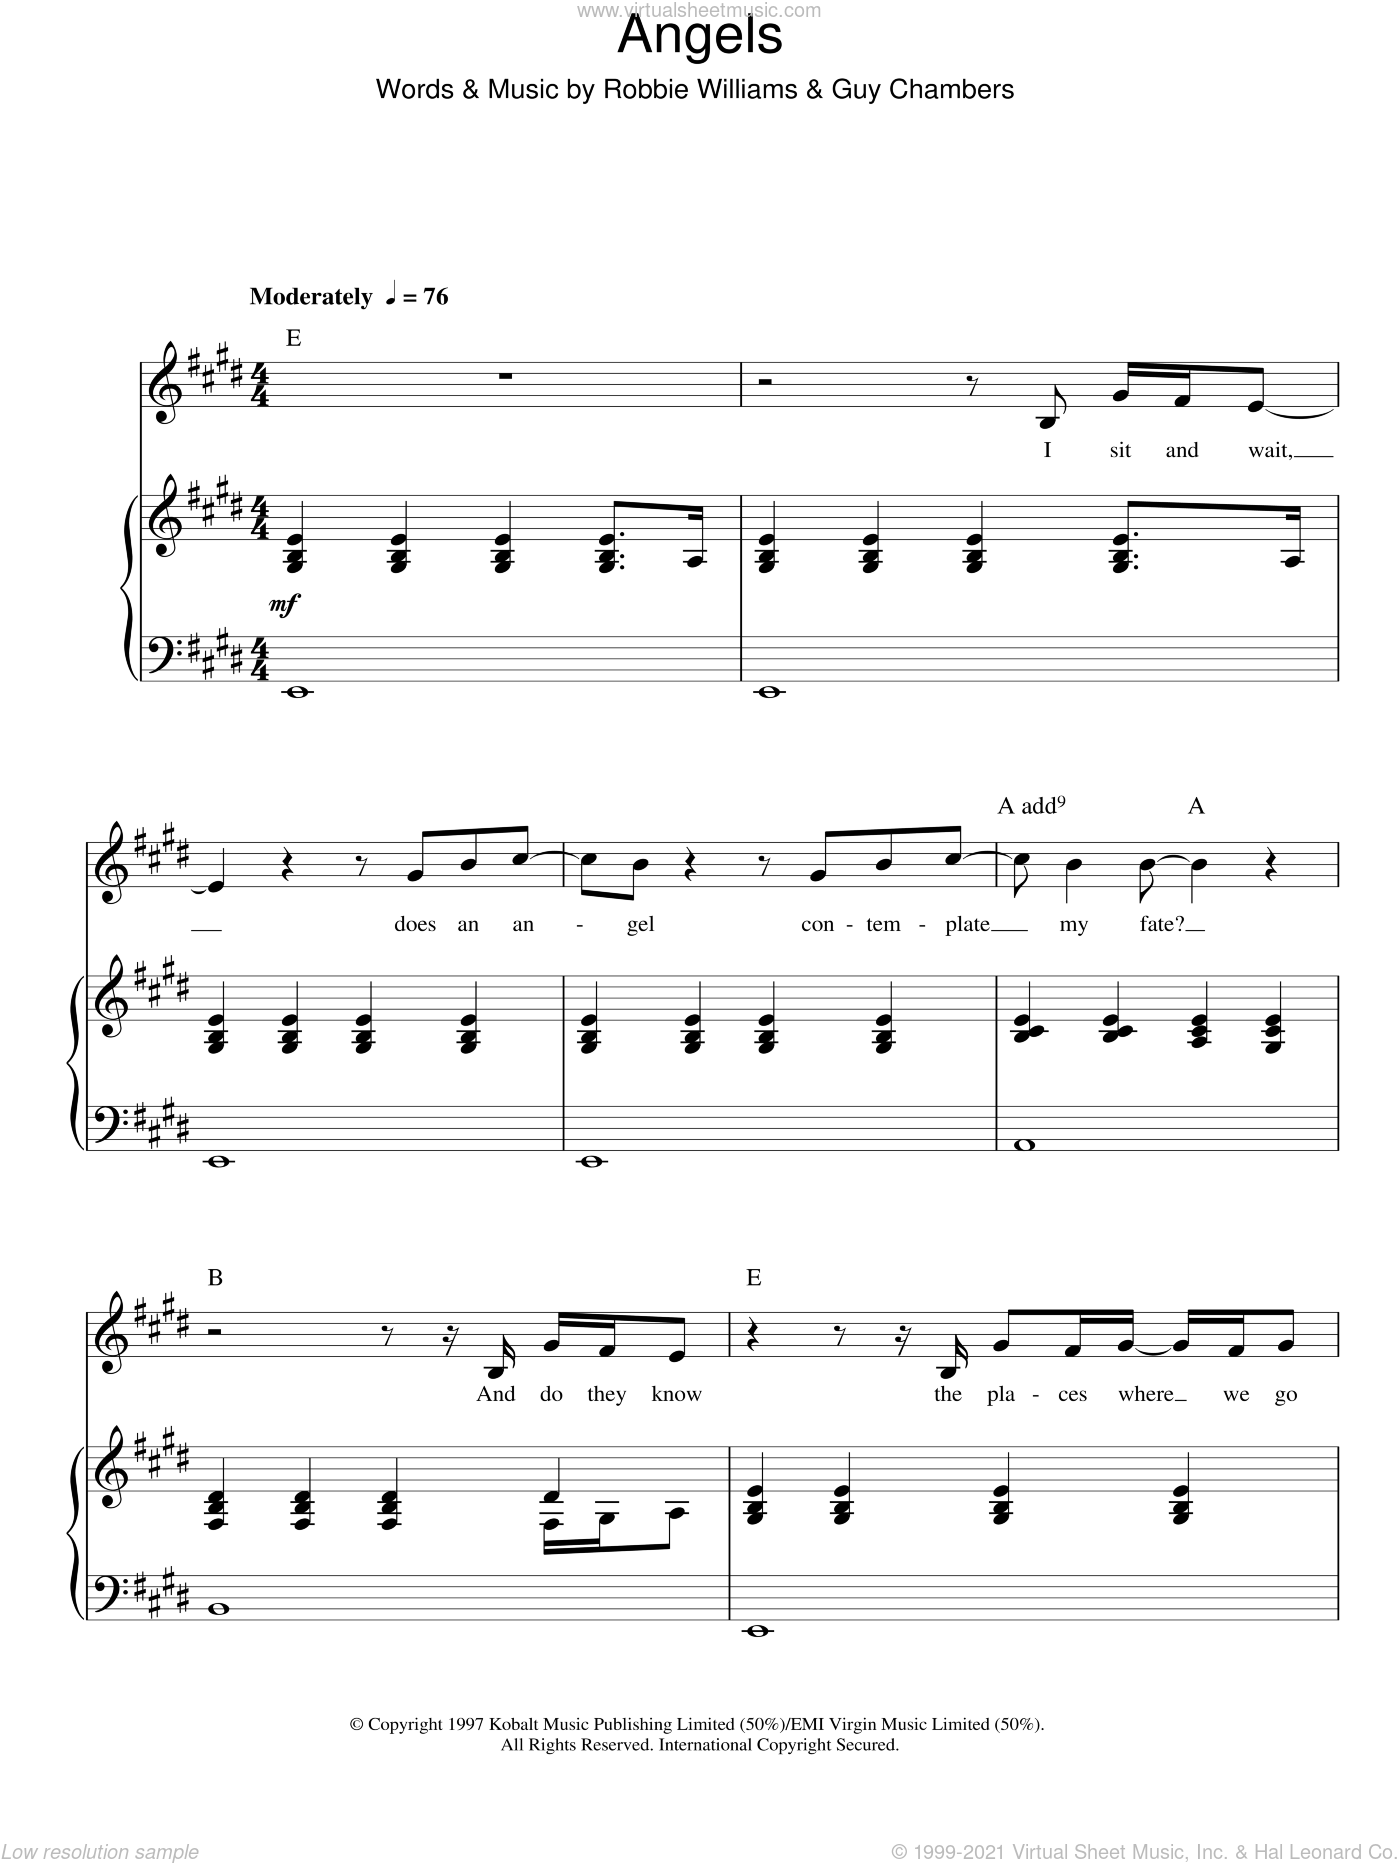 Angels sheet music for voice, piano or guitar by Robbie Williams and Guy Chambers, intermediate skill level